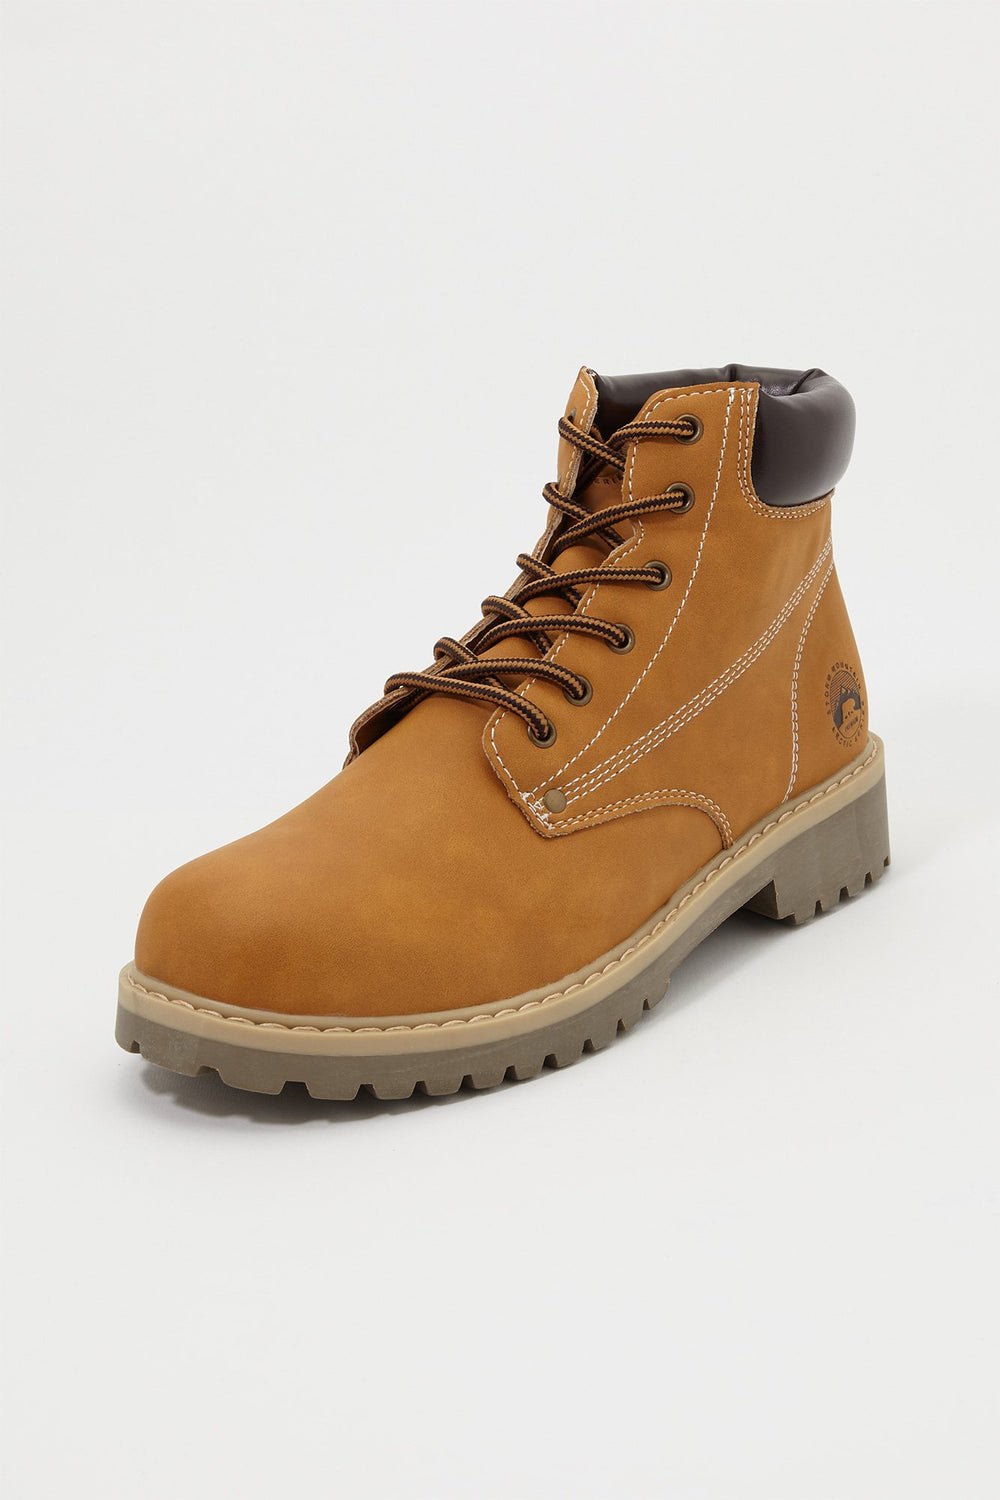 Storm Mountain Mens Lace-Up Boots Tan